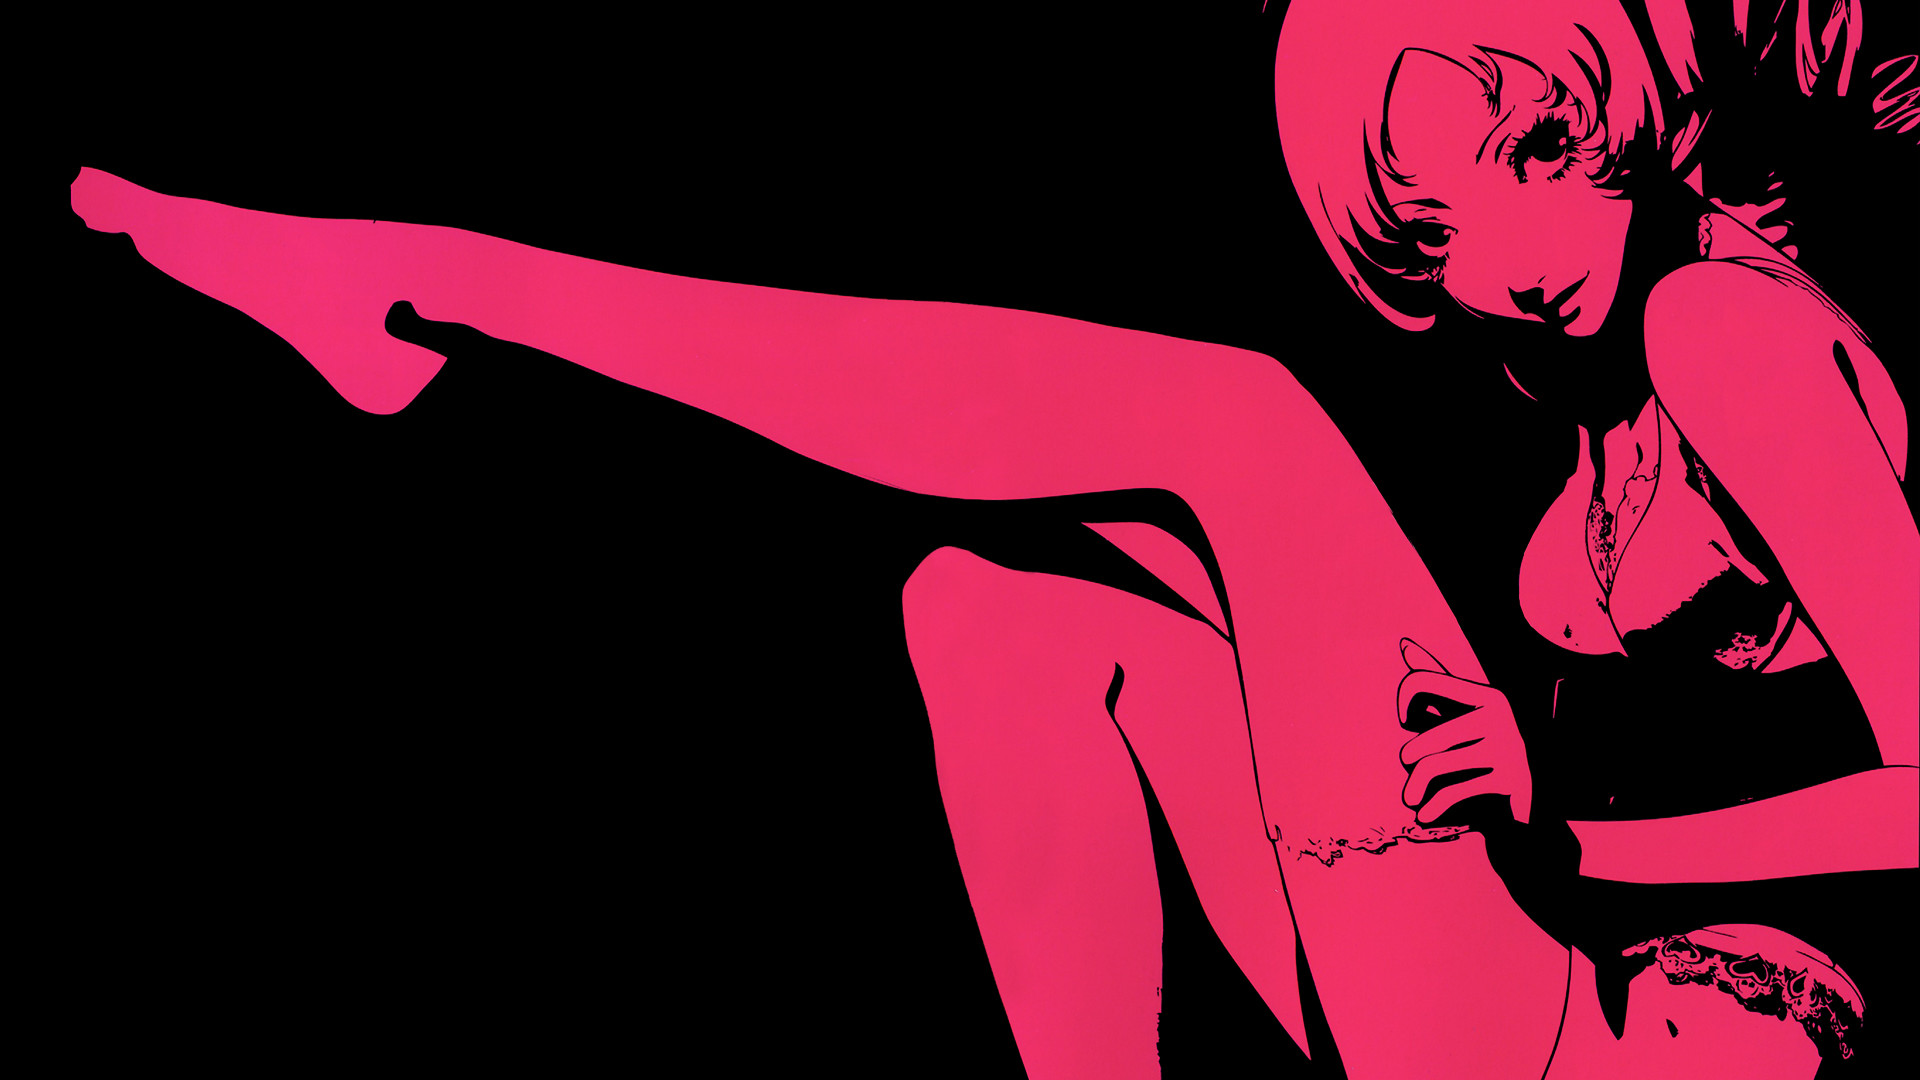 video games pink monochrome catherine game consoles HD Wallpaper